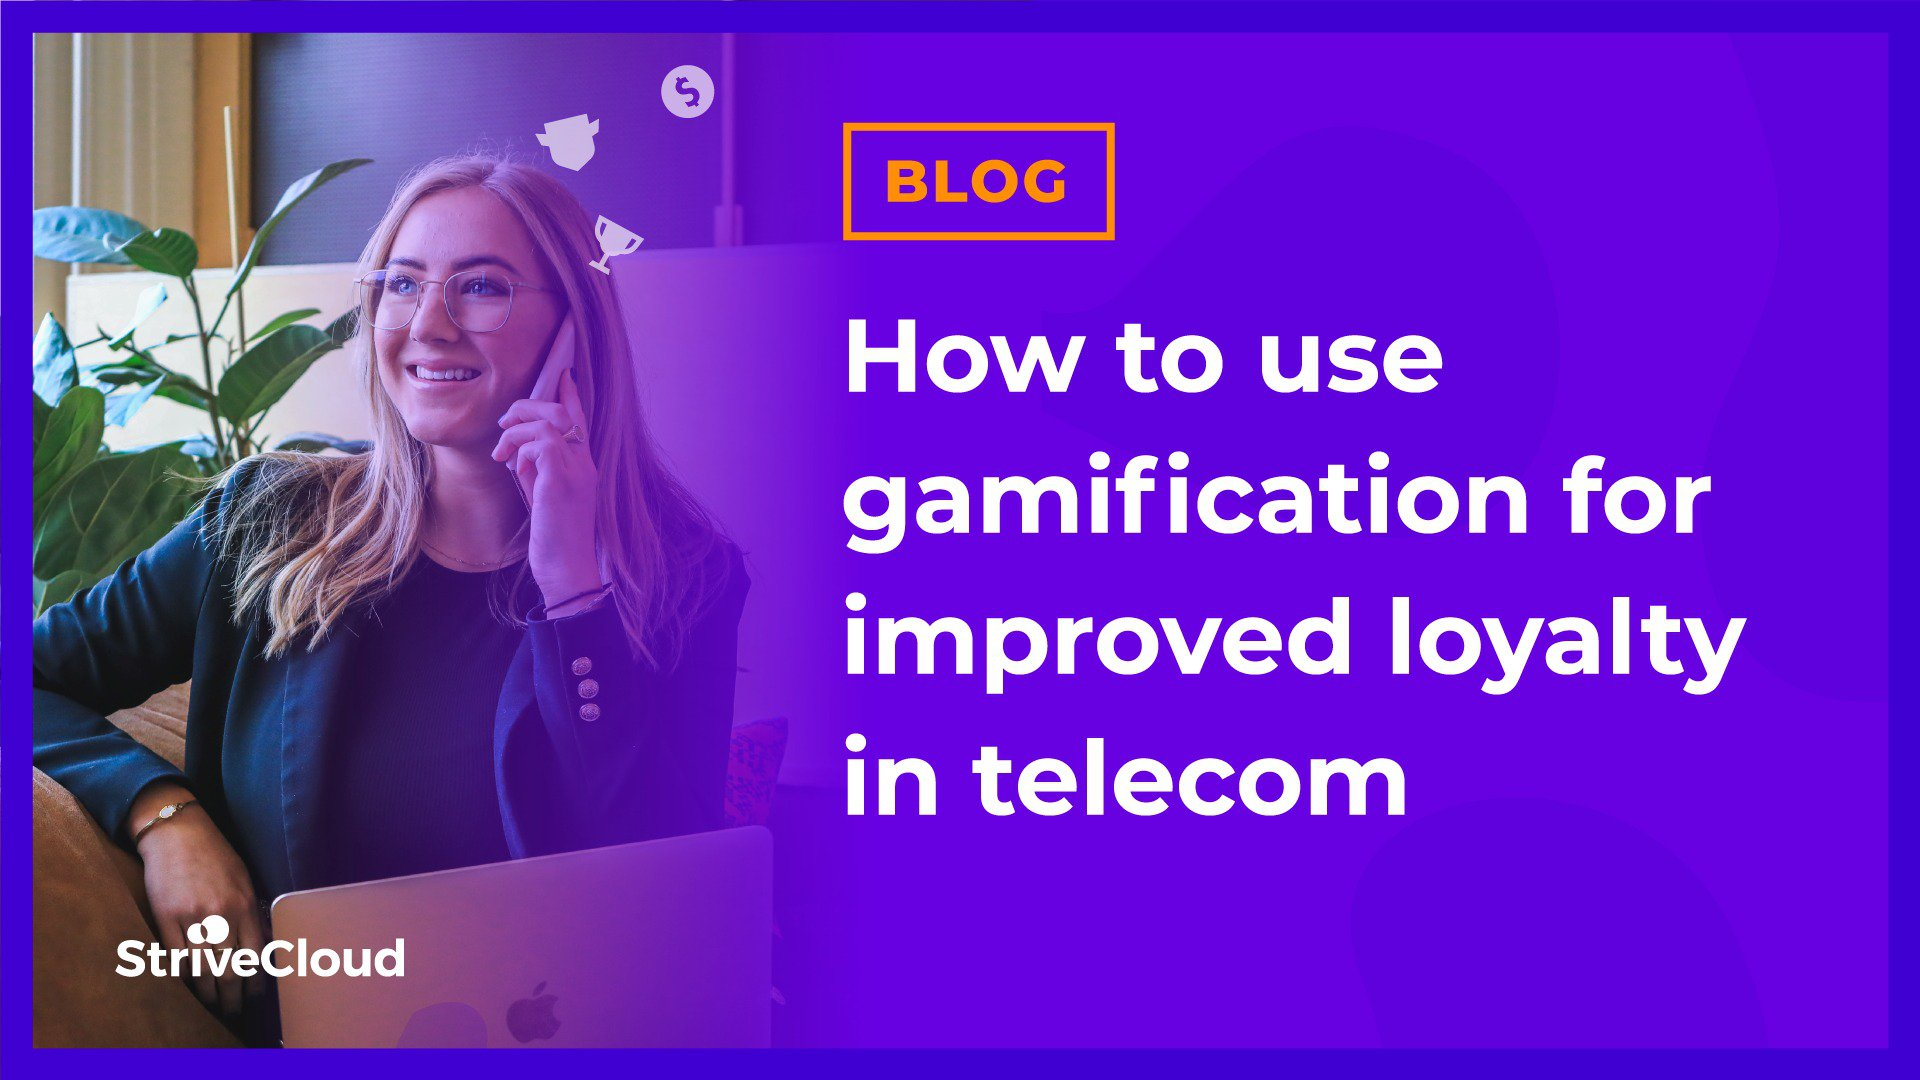 How to use gamification for improved loyalty in telecom